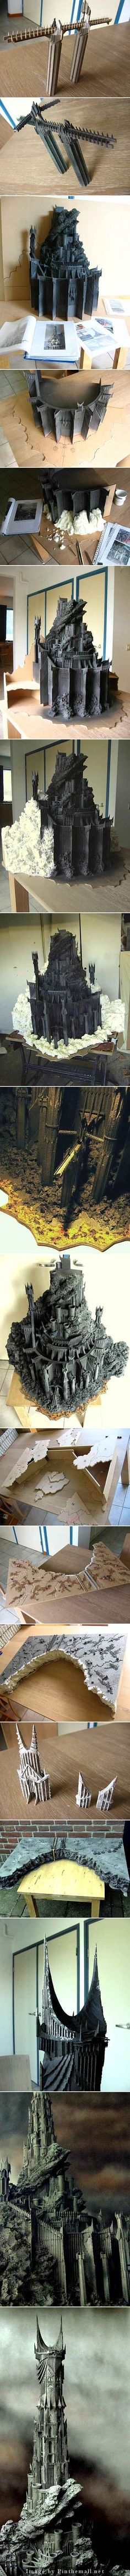 The One Ring • View topic - The Making of Barad-dûr (Update Nov 21st) - created via http://pinthemall.net